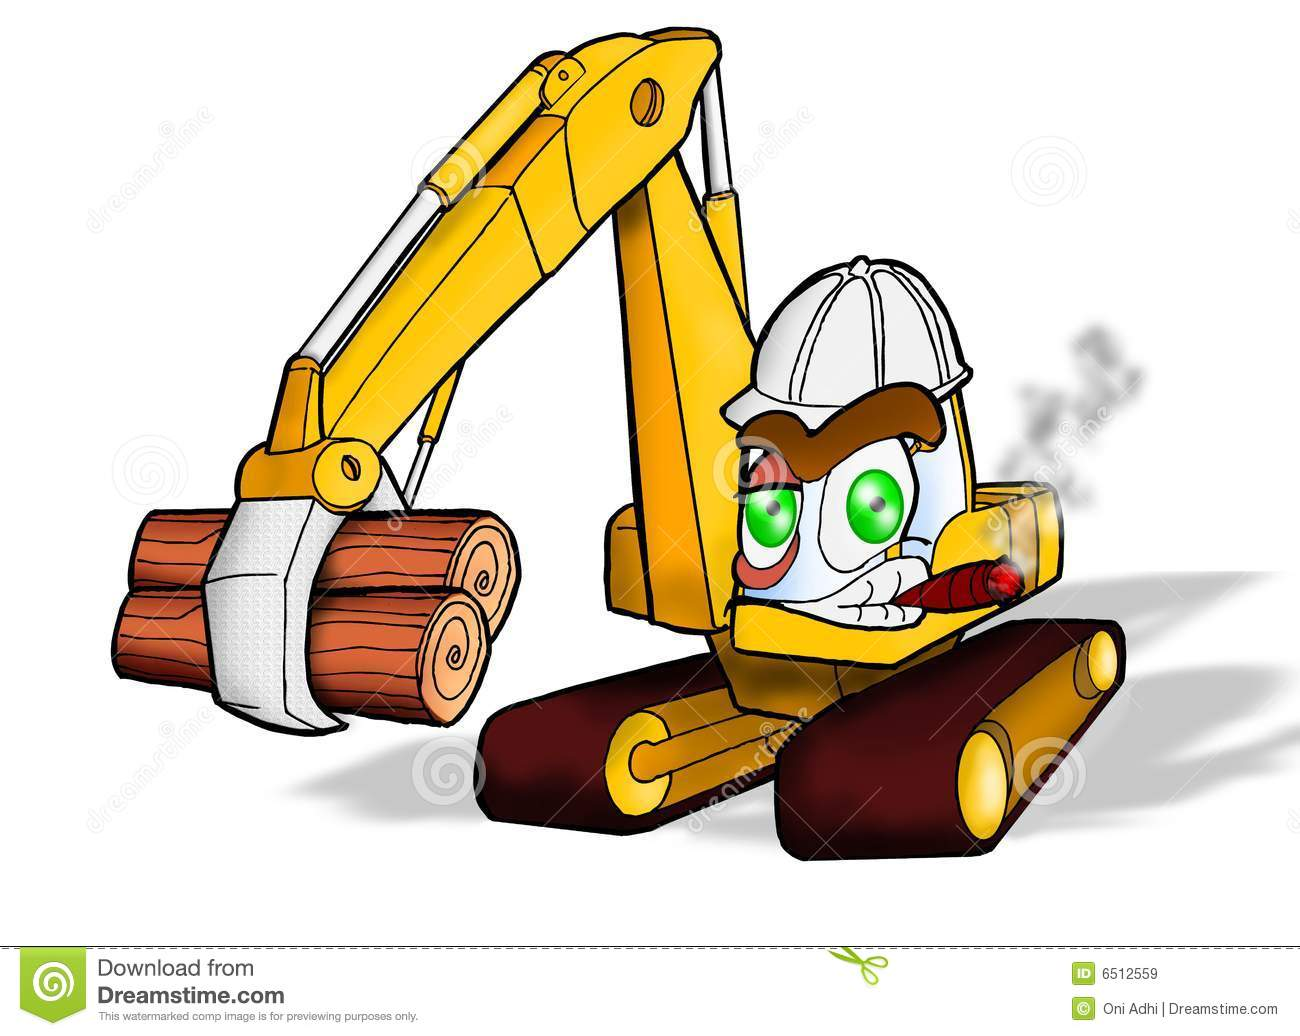 Backhoe Excavator | Kids Show Construction Vehicles on Job ...